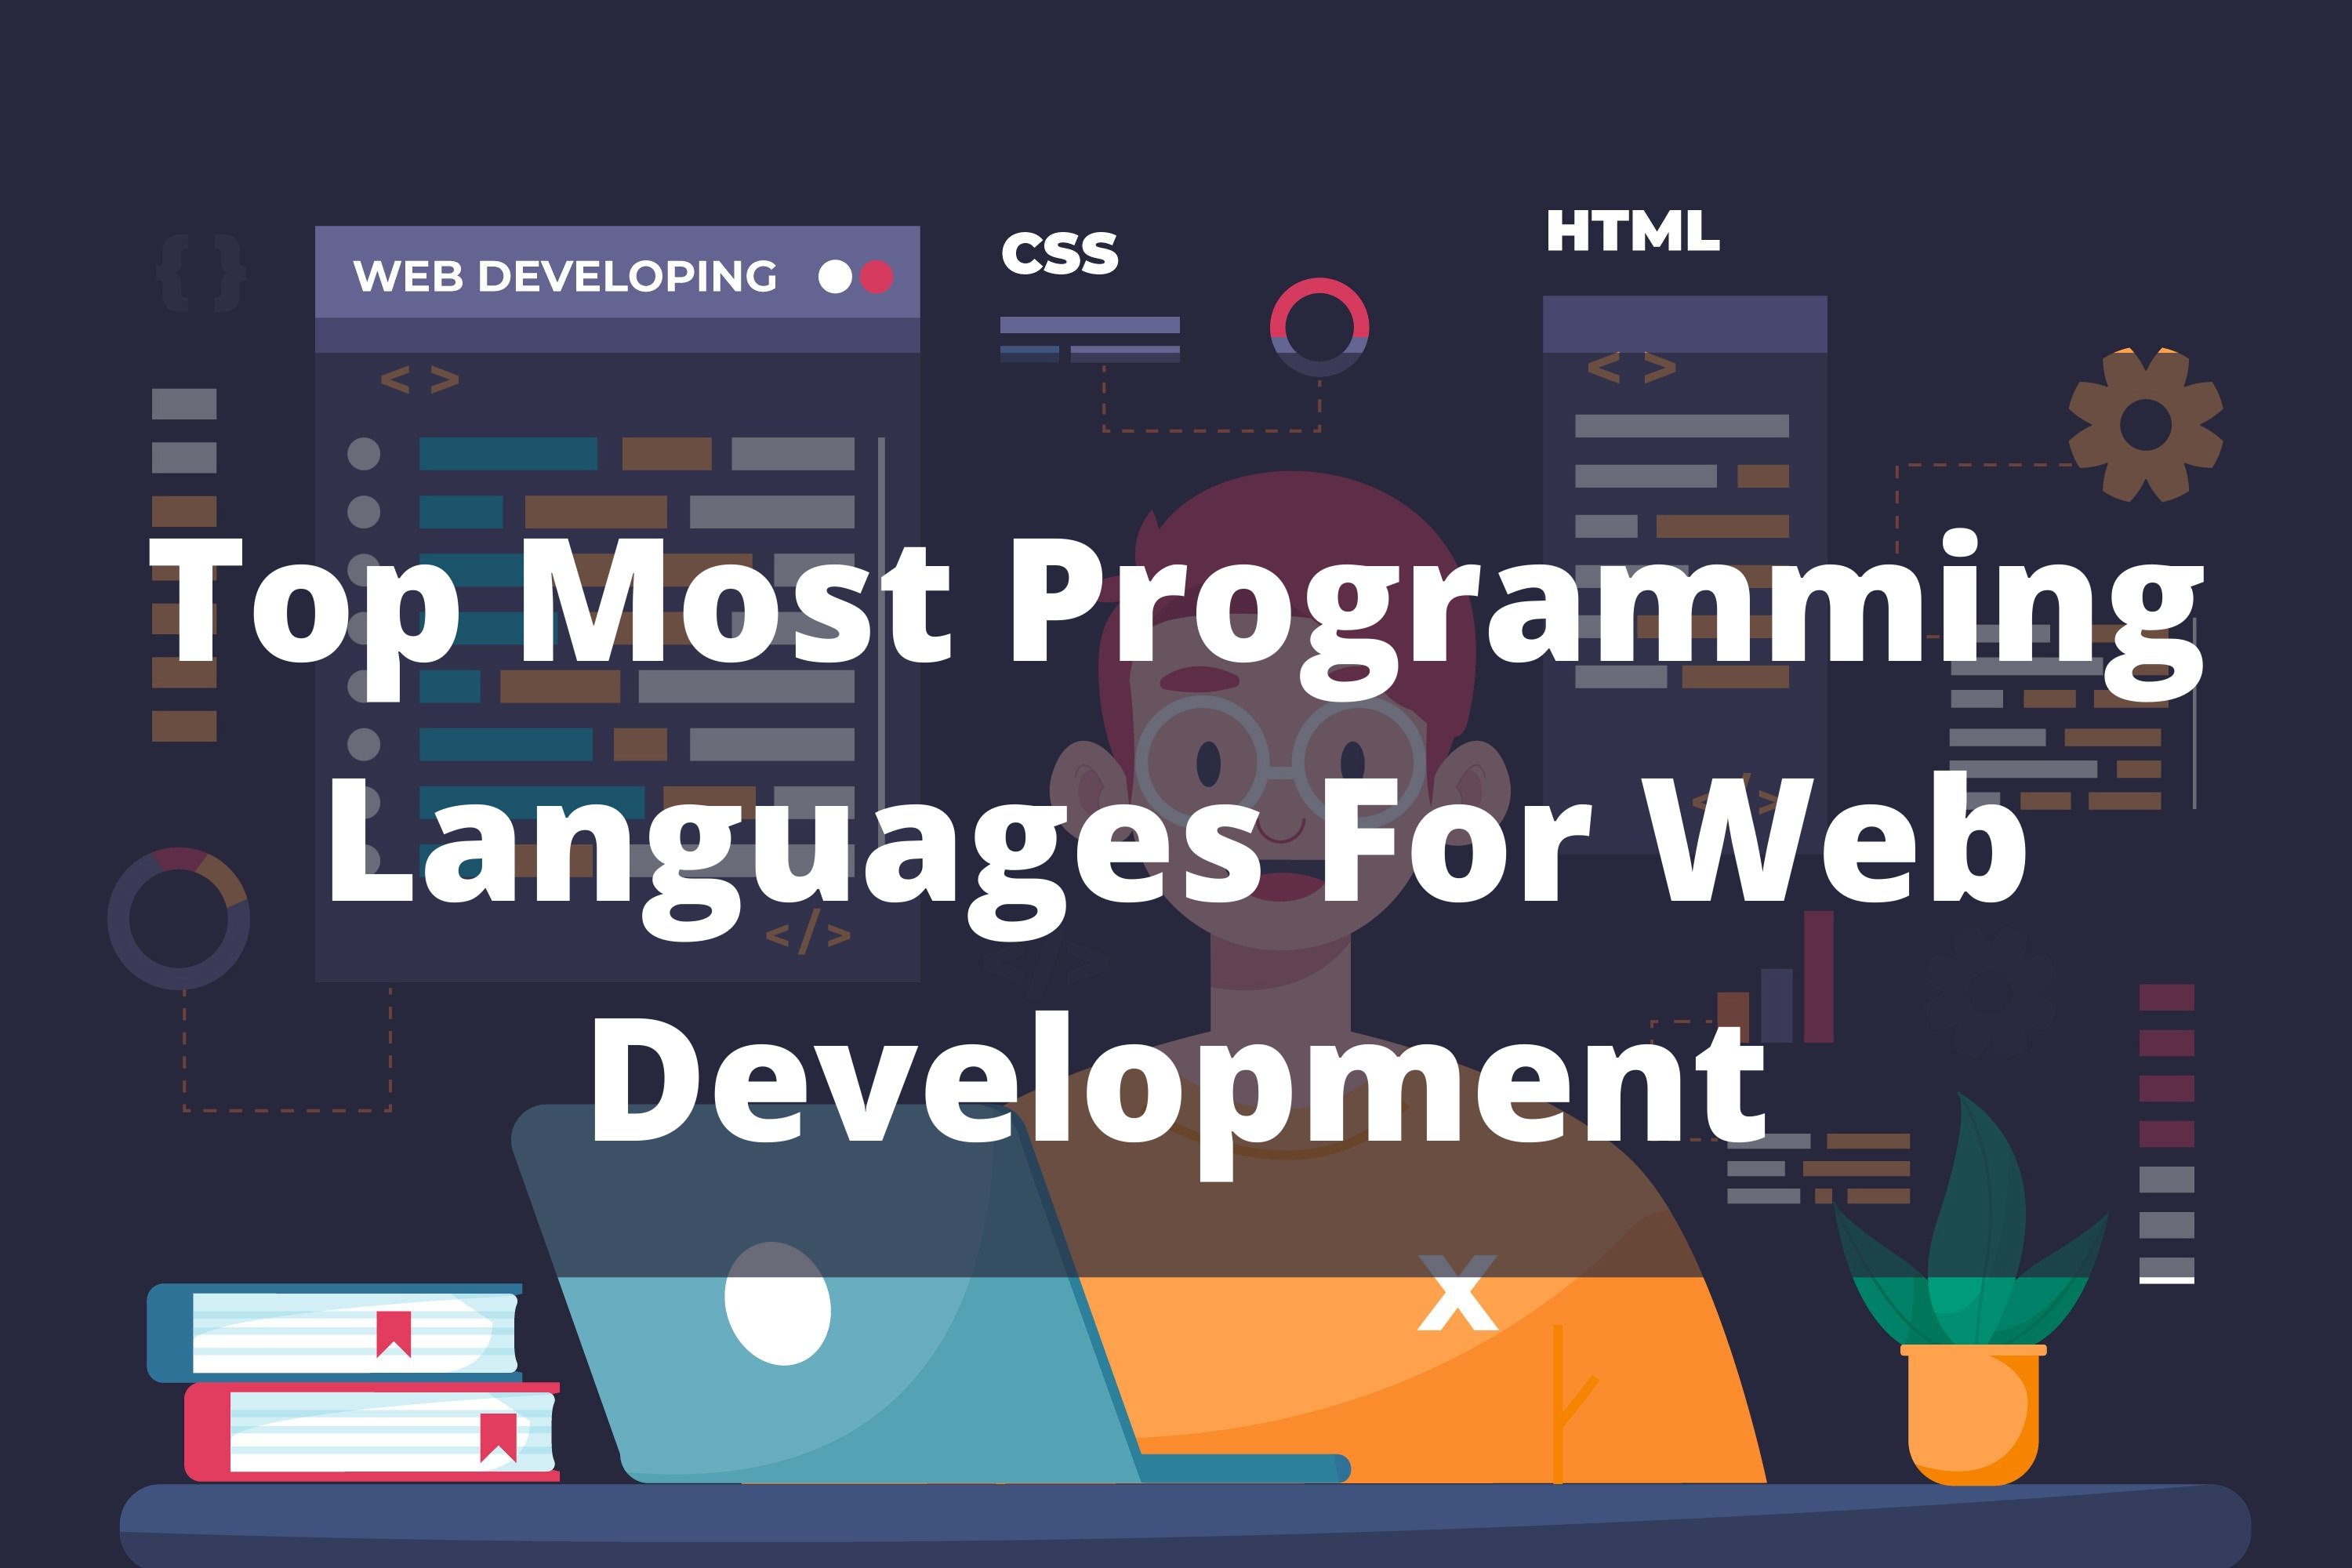 Top Most Programming Languages For Web Development